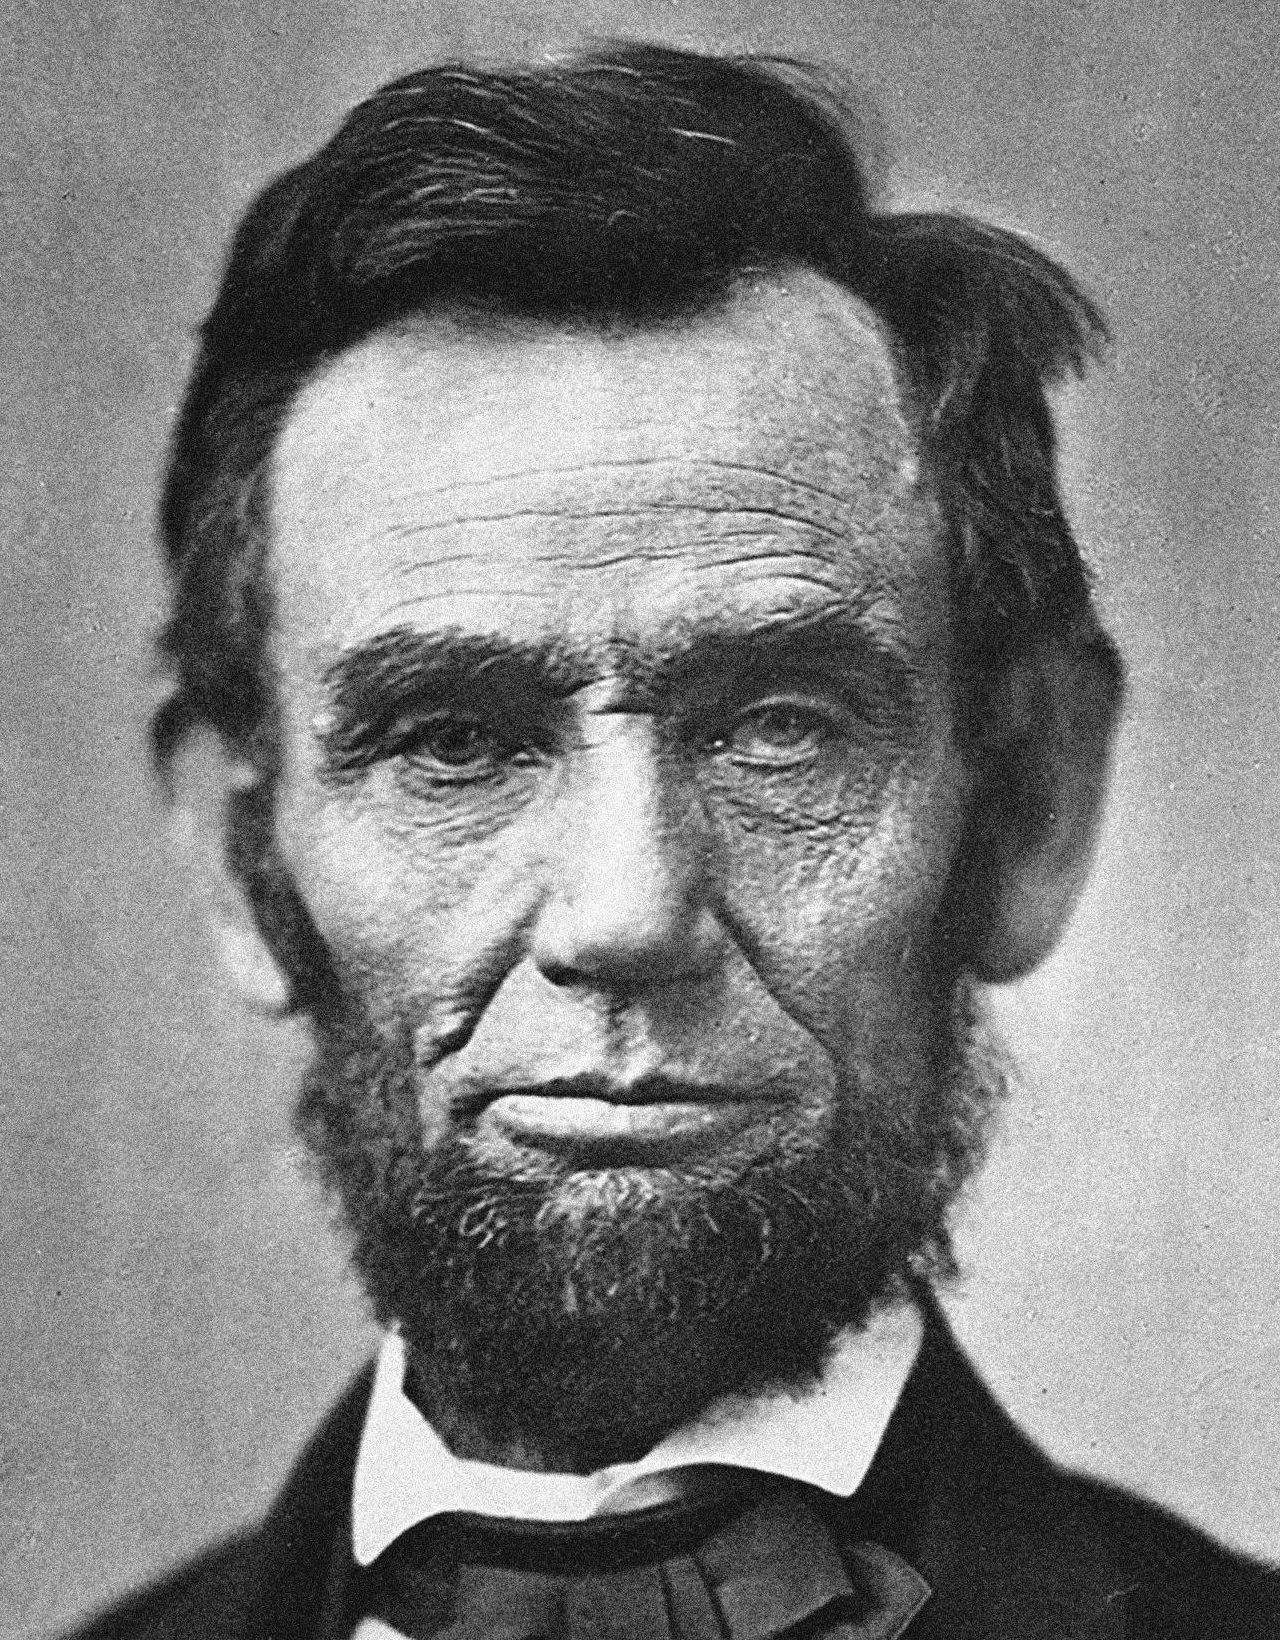 abrham lincoln a freat president Abraham lincoln was a great president, having played a major role in the abolishing of slavery but he was not necessarily the best i think the question should be was abraham lincoln a good president i would vote yes to that question otherwise, ronald reagan was my favorite.